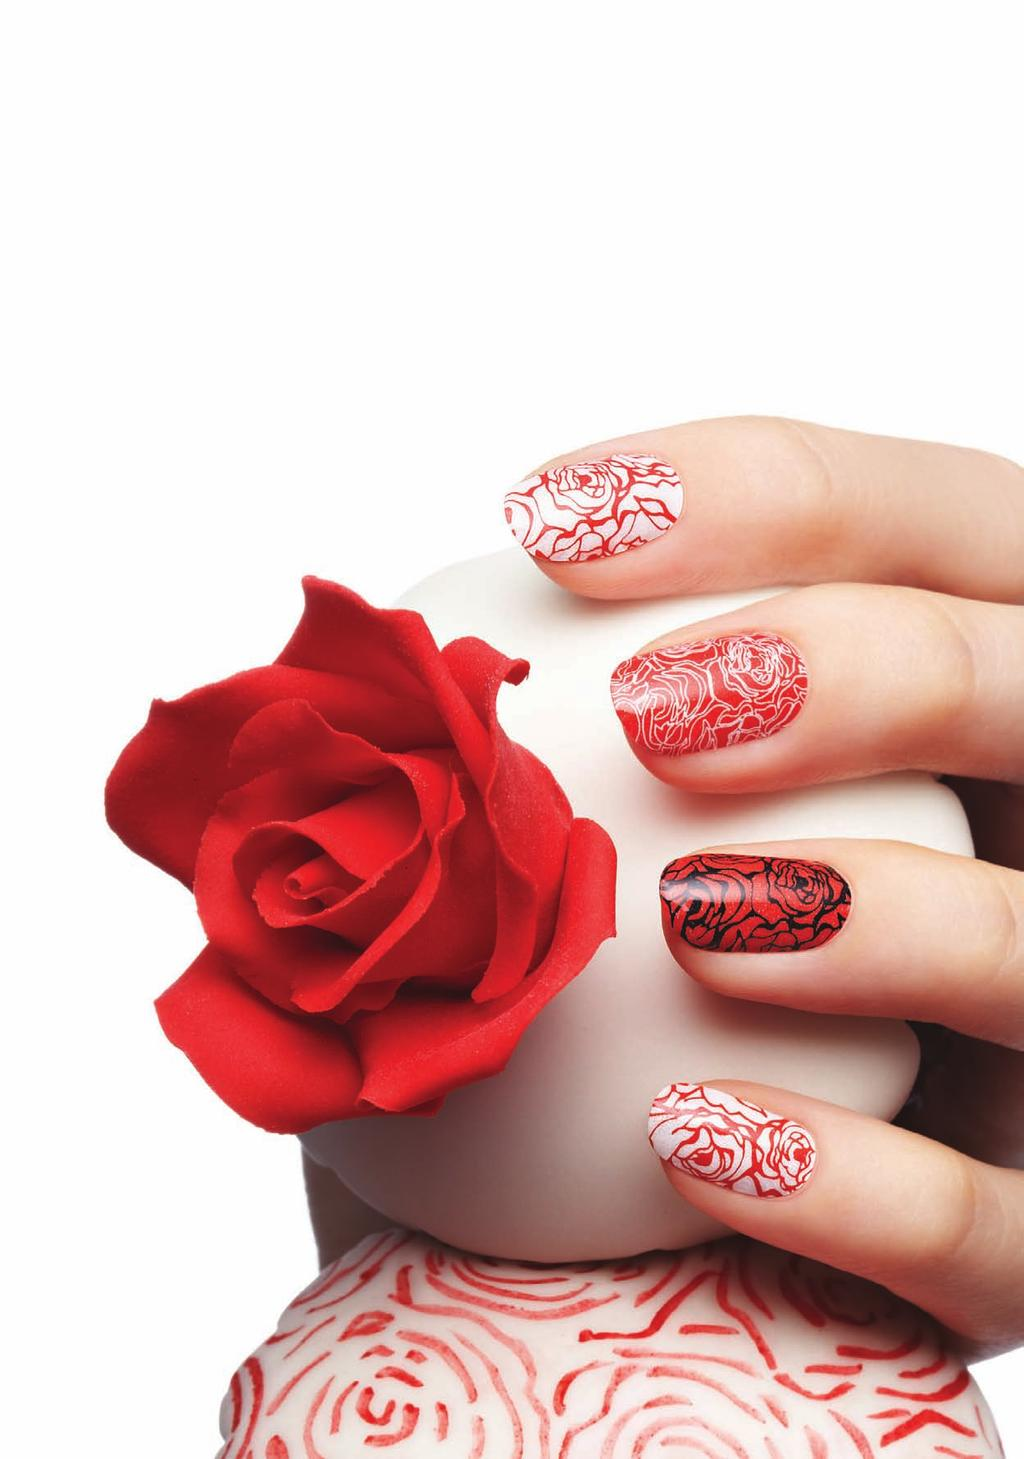 Cleanser Prep Top Gel Brush On Glue Dashing Diva Sharecall New Printed Circuit Board Production Using Uv Nail Curing Lamp